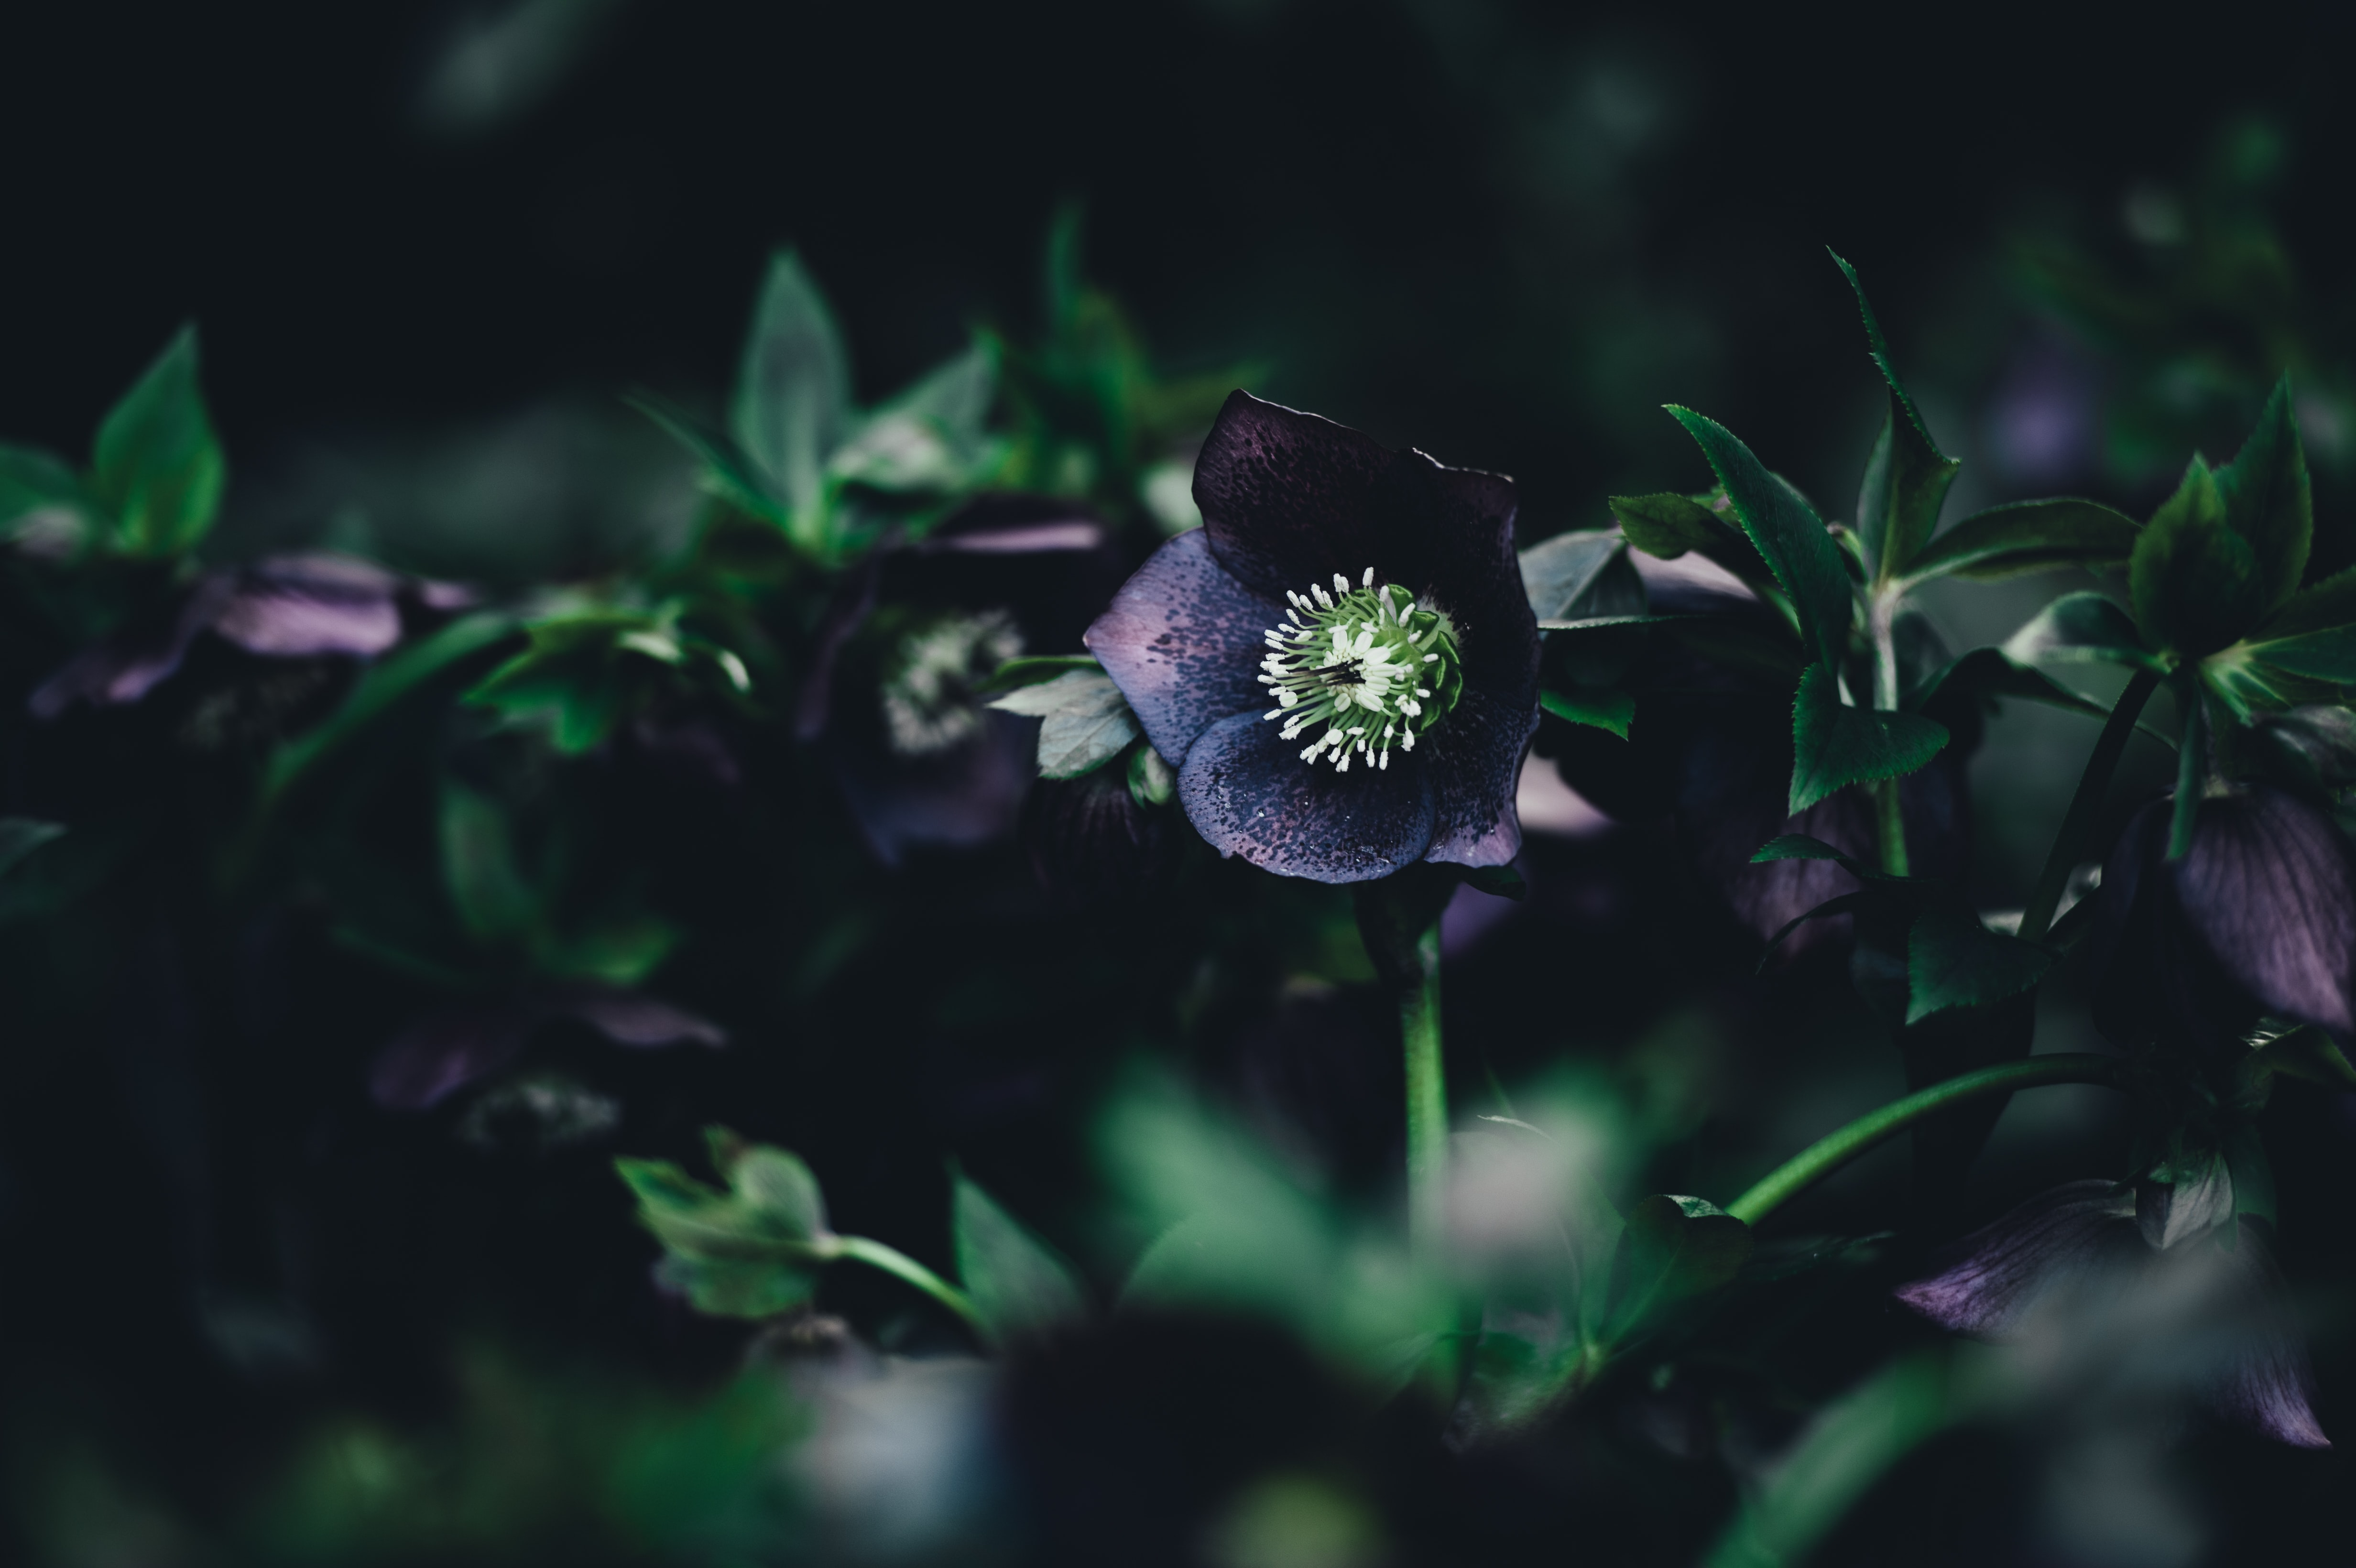 Close-up of black hellebore flowers among leaves